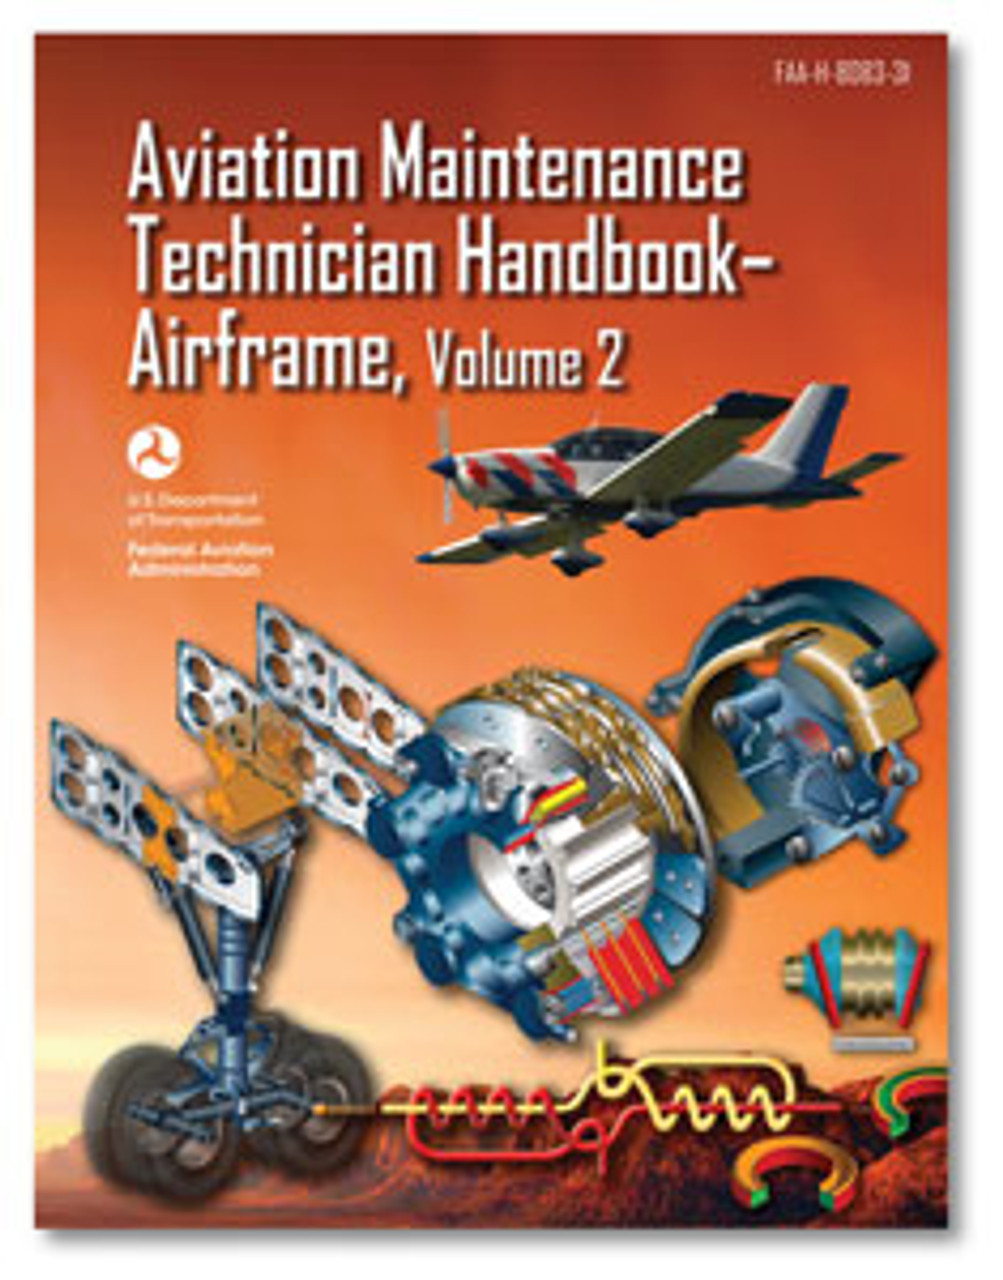 ASA: Aviation Maintenance Technician Handbook: Airframe Volume 2